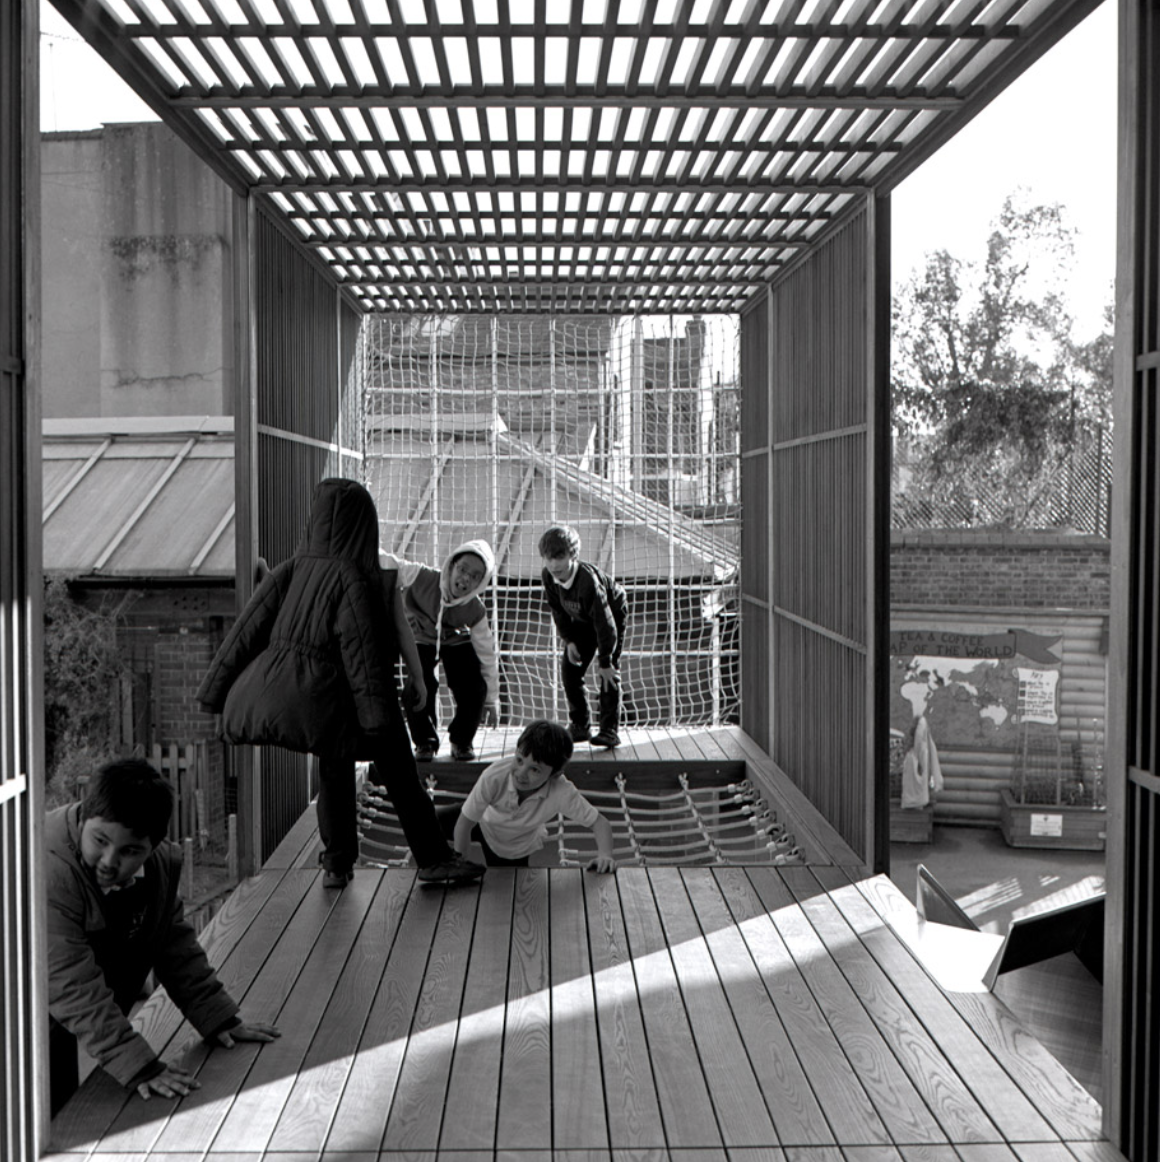 Children playing in the Chisenhill raised platform designed by architect and school parent Asif Khan